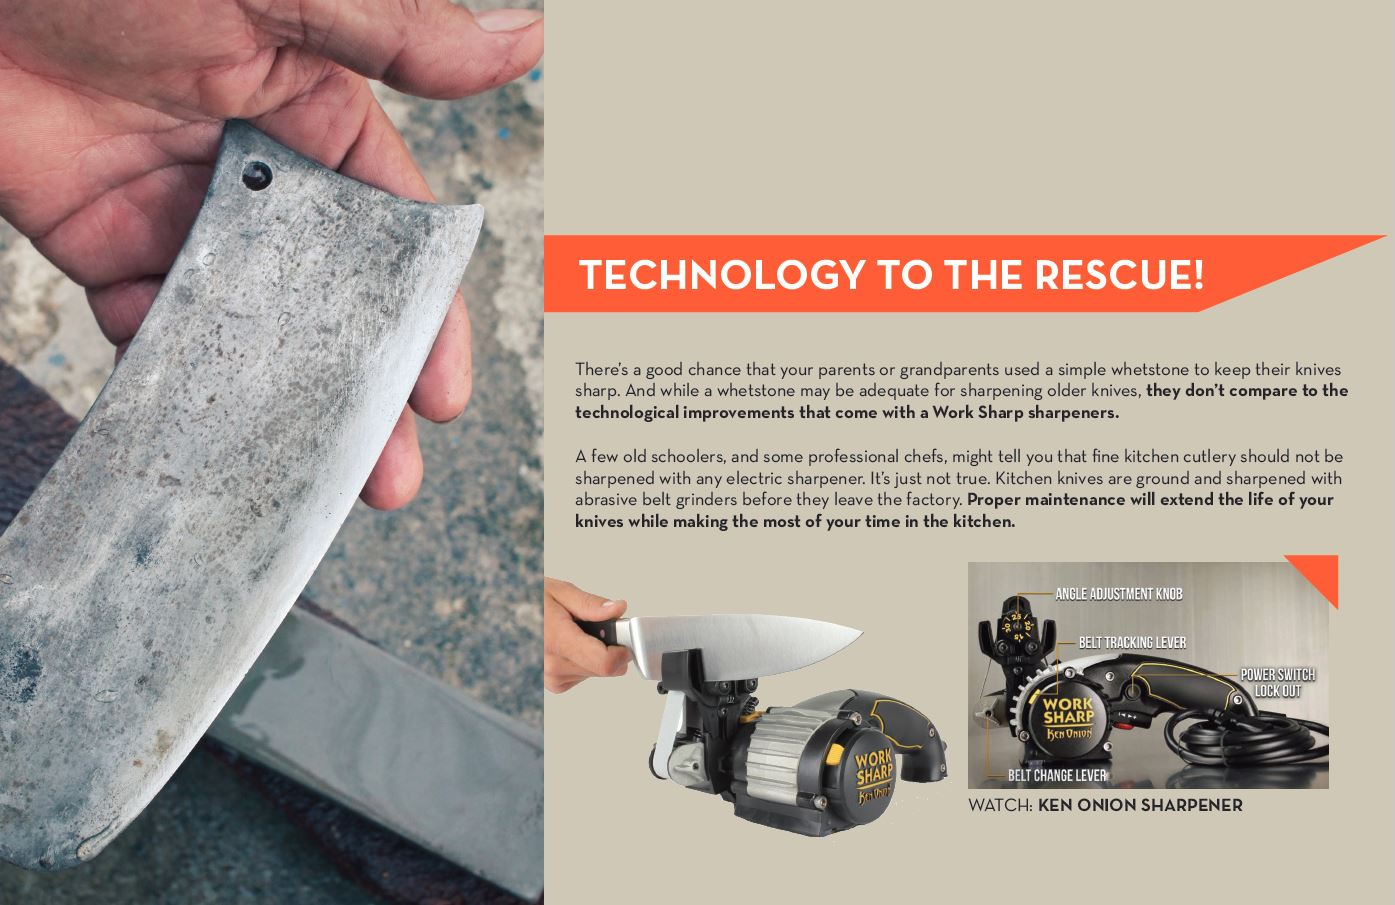 Sharpening Technology To The Rescue!